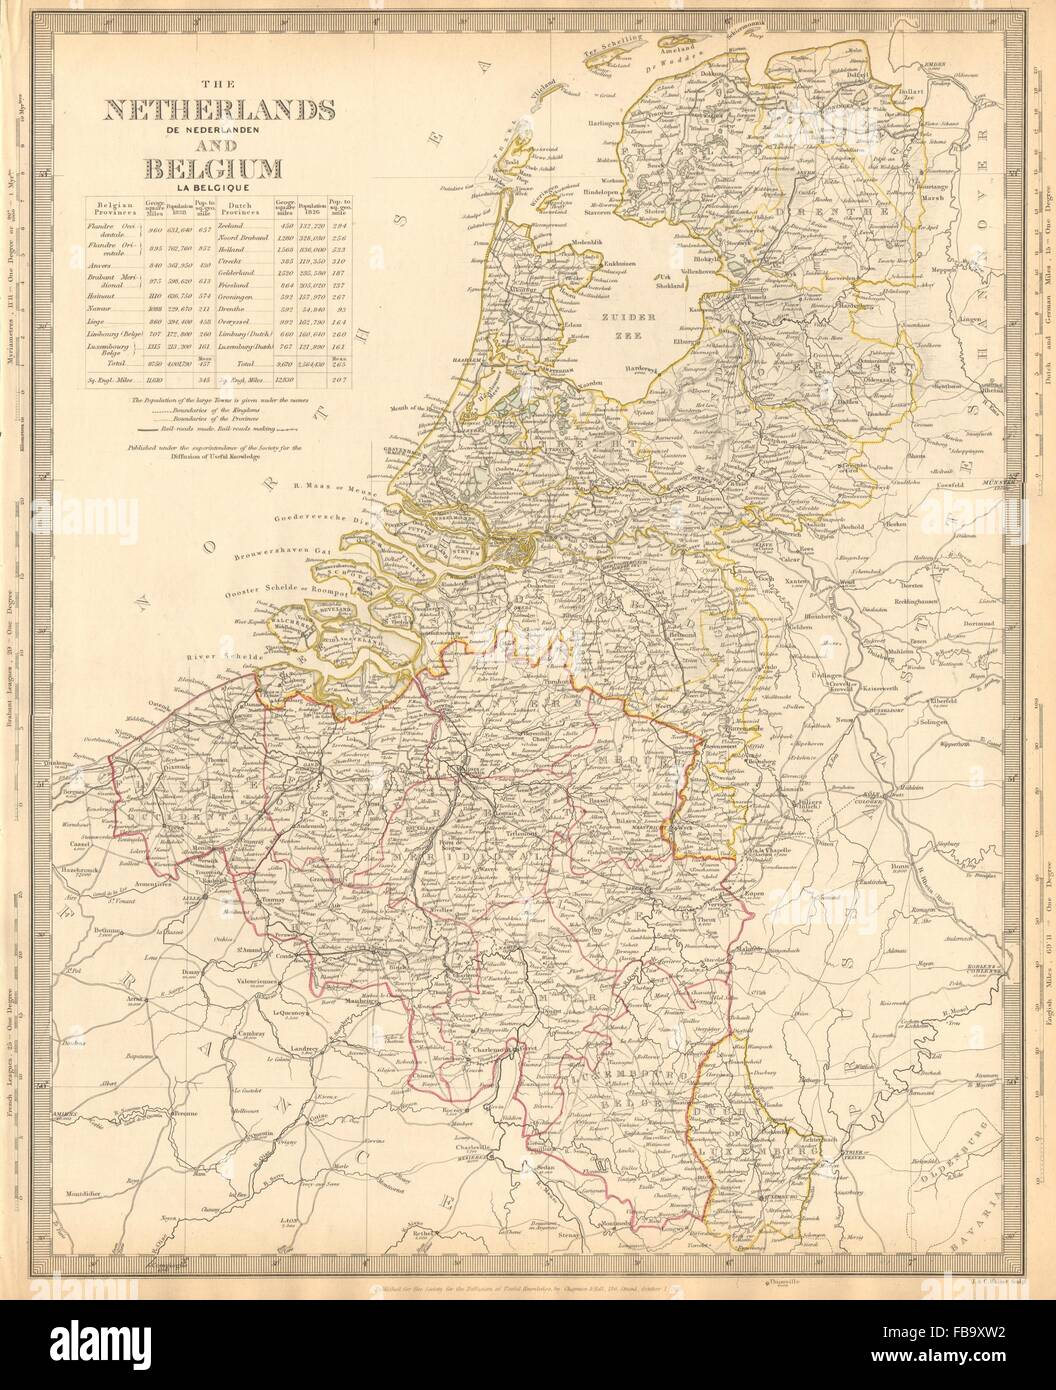 netherlands belgium w railways in use under construction sduk 1844 map